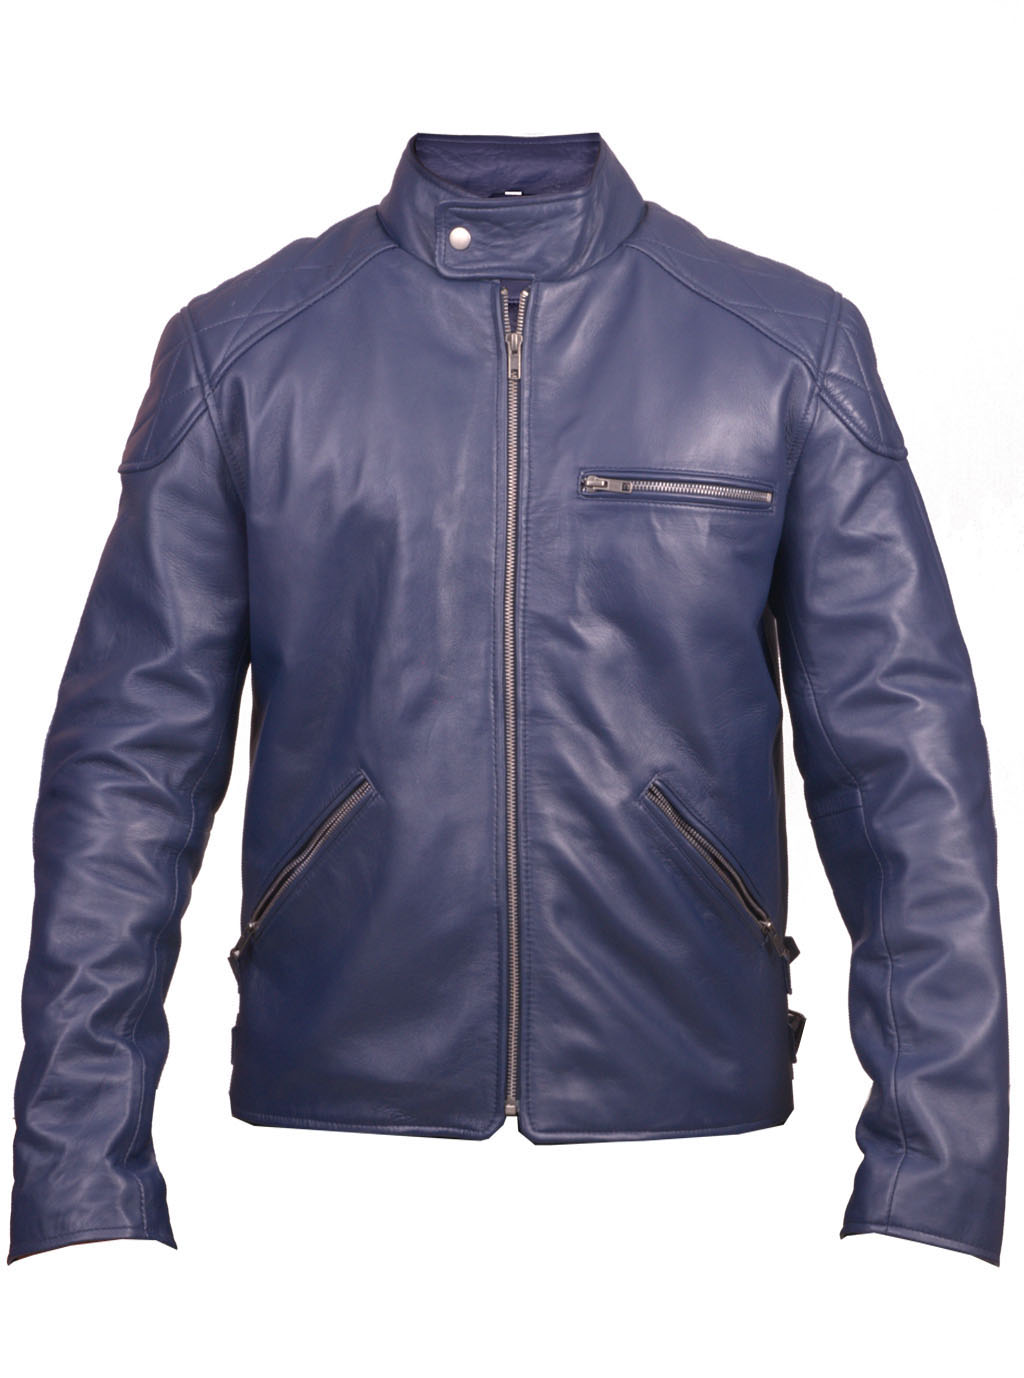 NAVY BLUE LEATHER JACKET, ORIGINAL LEATHER JACKET